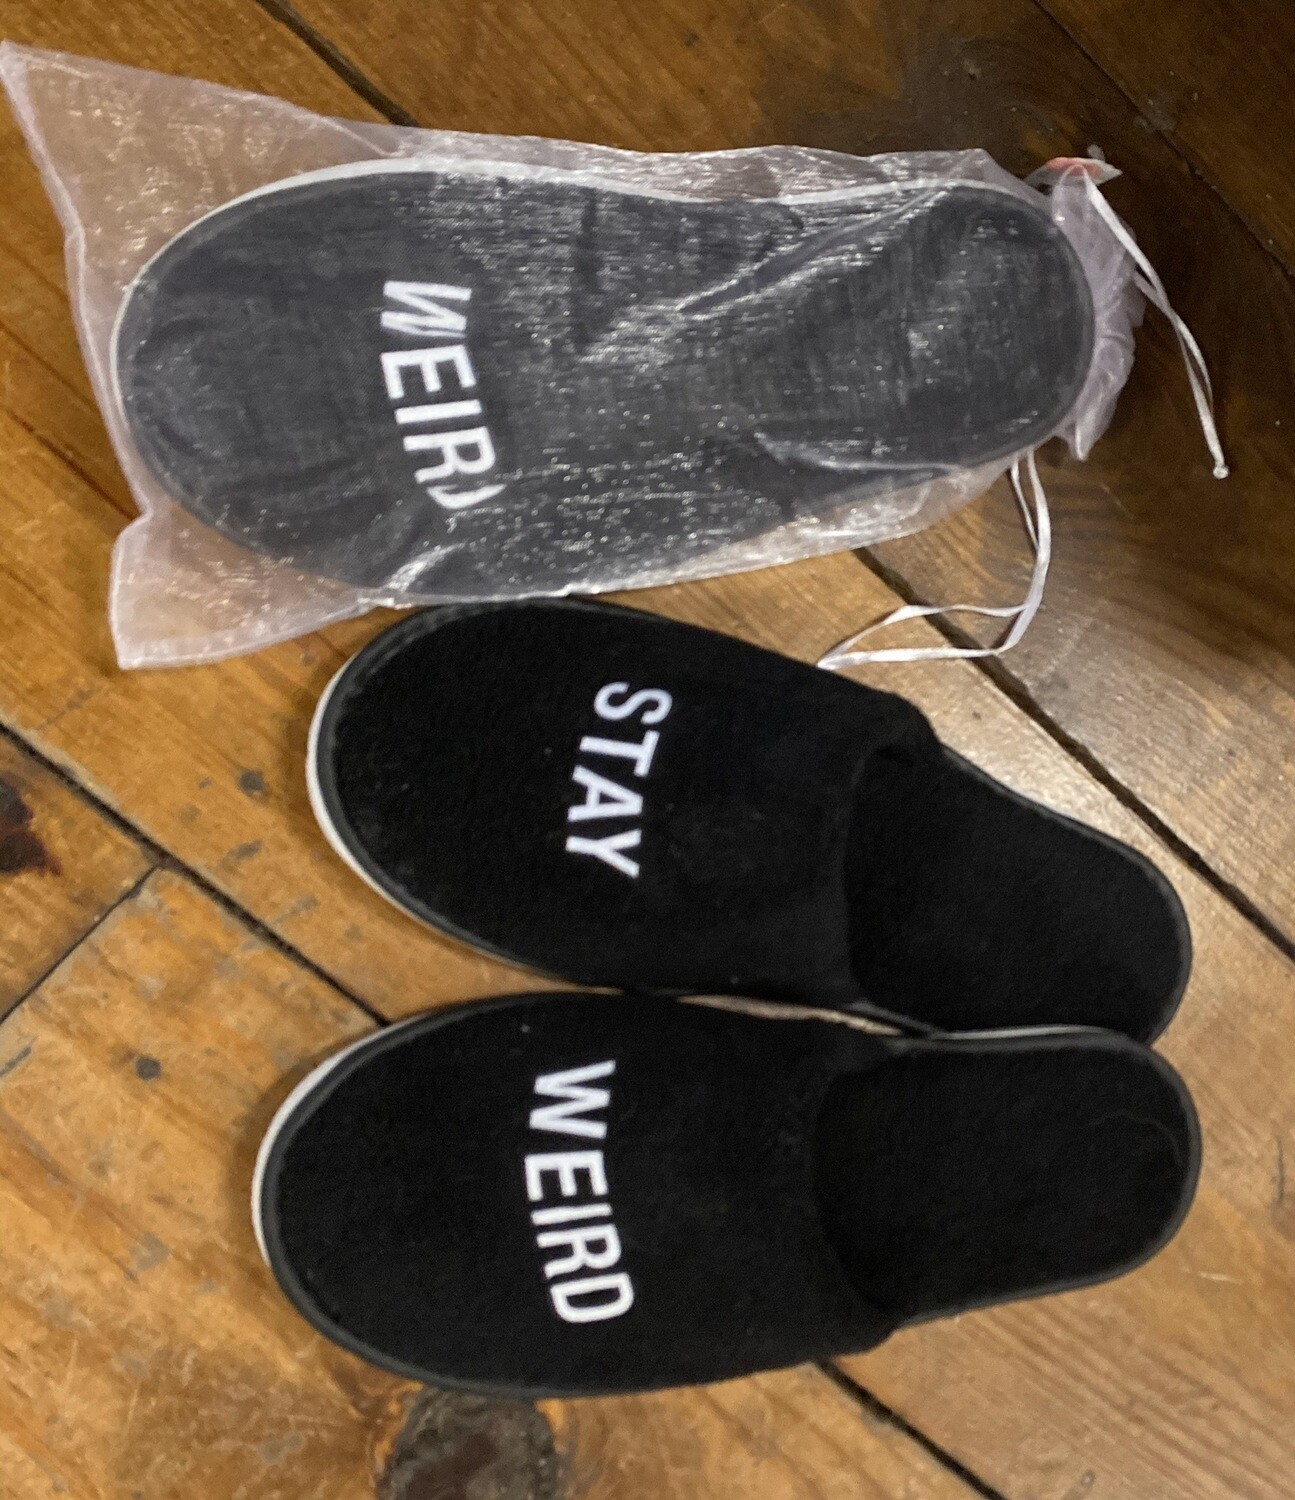 Stay Weird Comfy Slippers W Rubber Bottom O/S